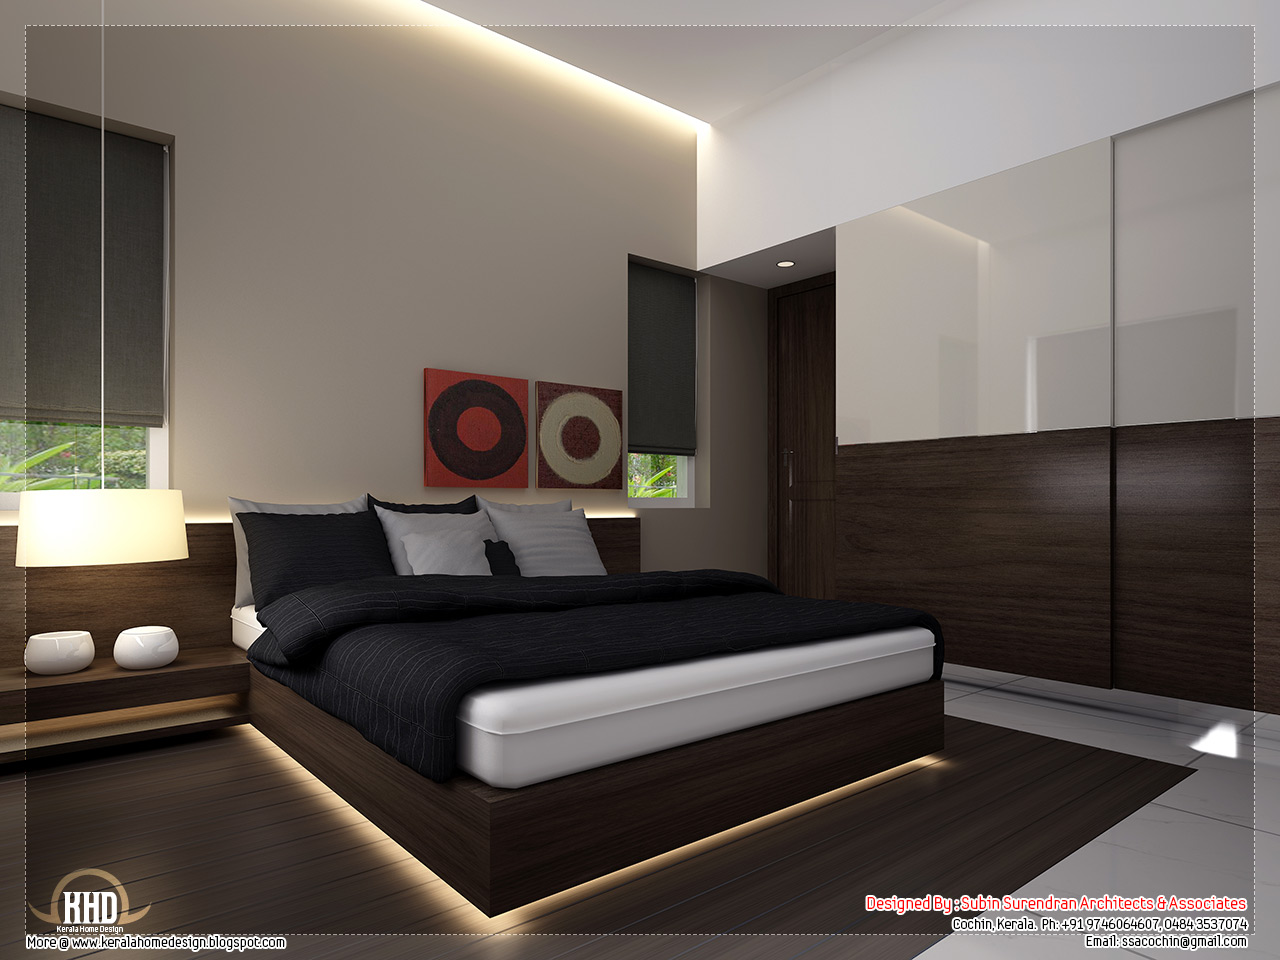 Beautiful home interior designs kerala homes Beautiful home interior designs